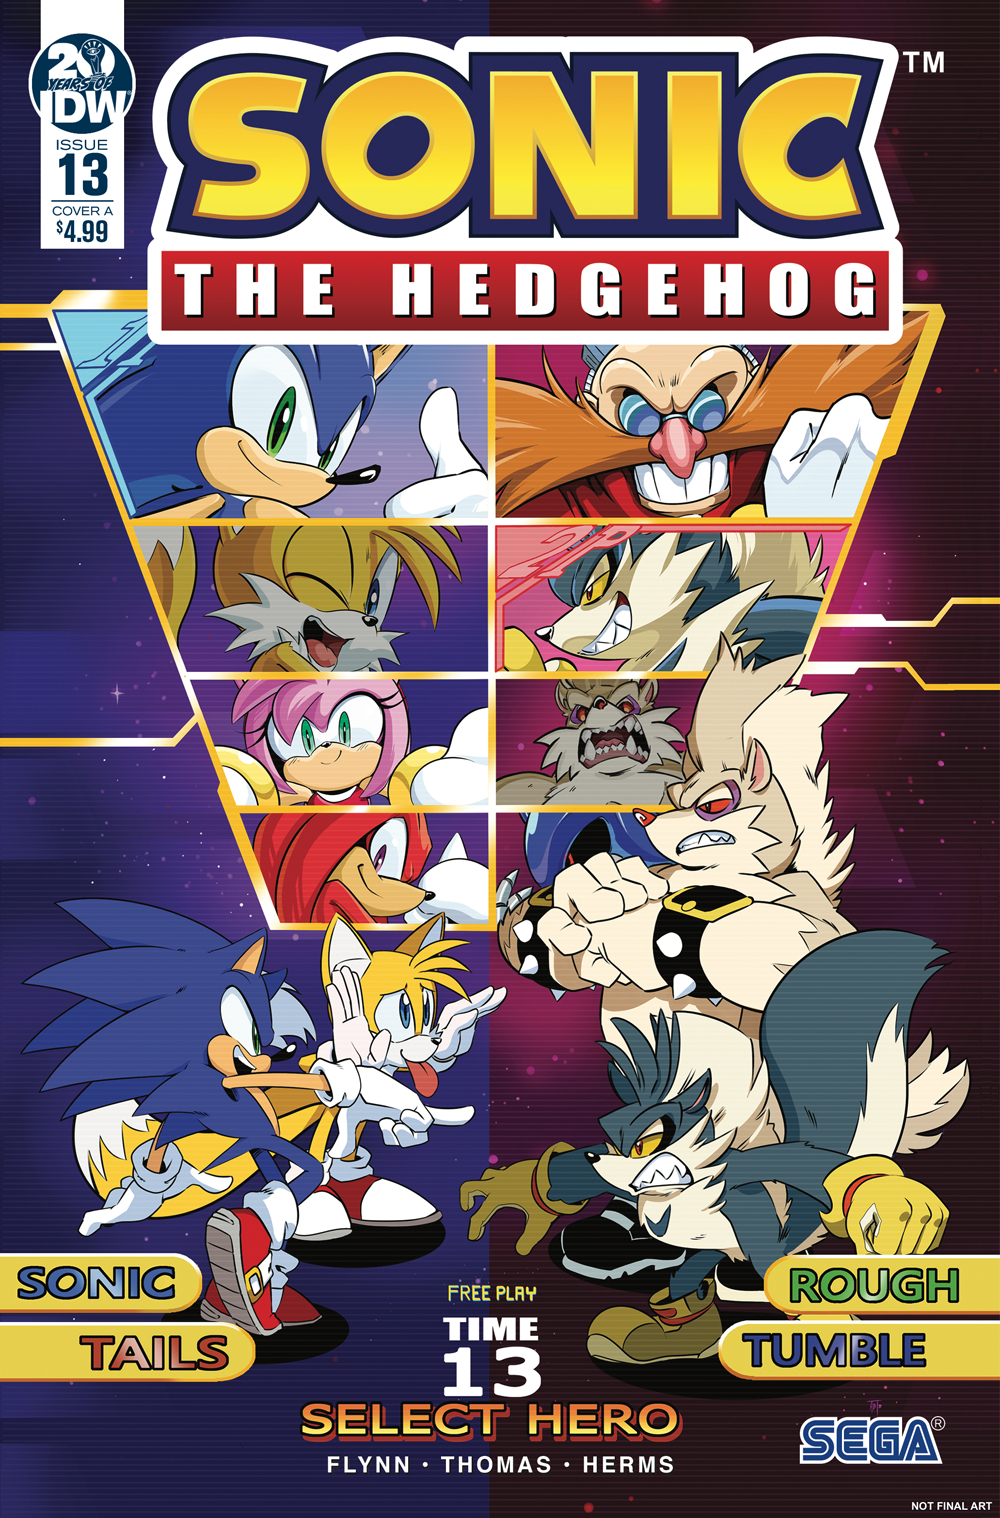 SONIC THE HEDGEHOG #13 CVR A THOMAS